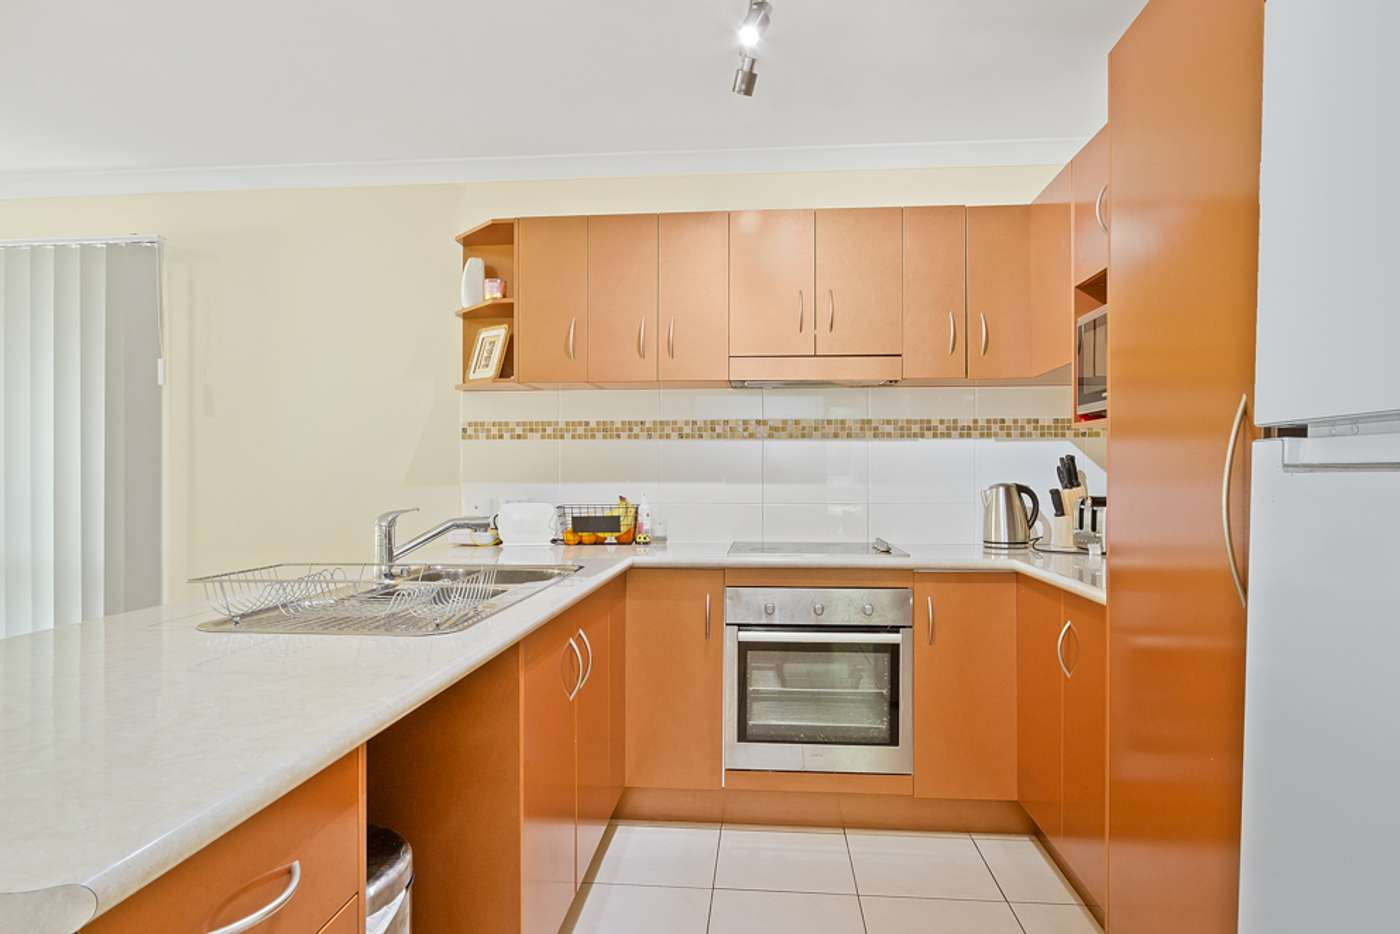 Fifth view of Homely house listing, 12 Markowitz Place, Kirkwood QLD 4680